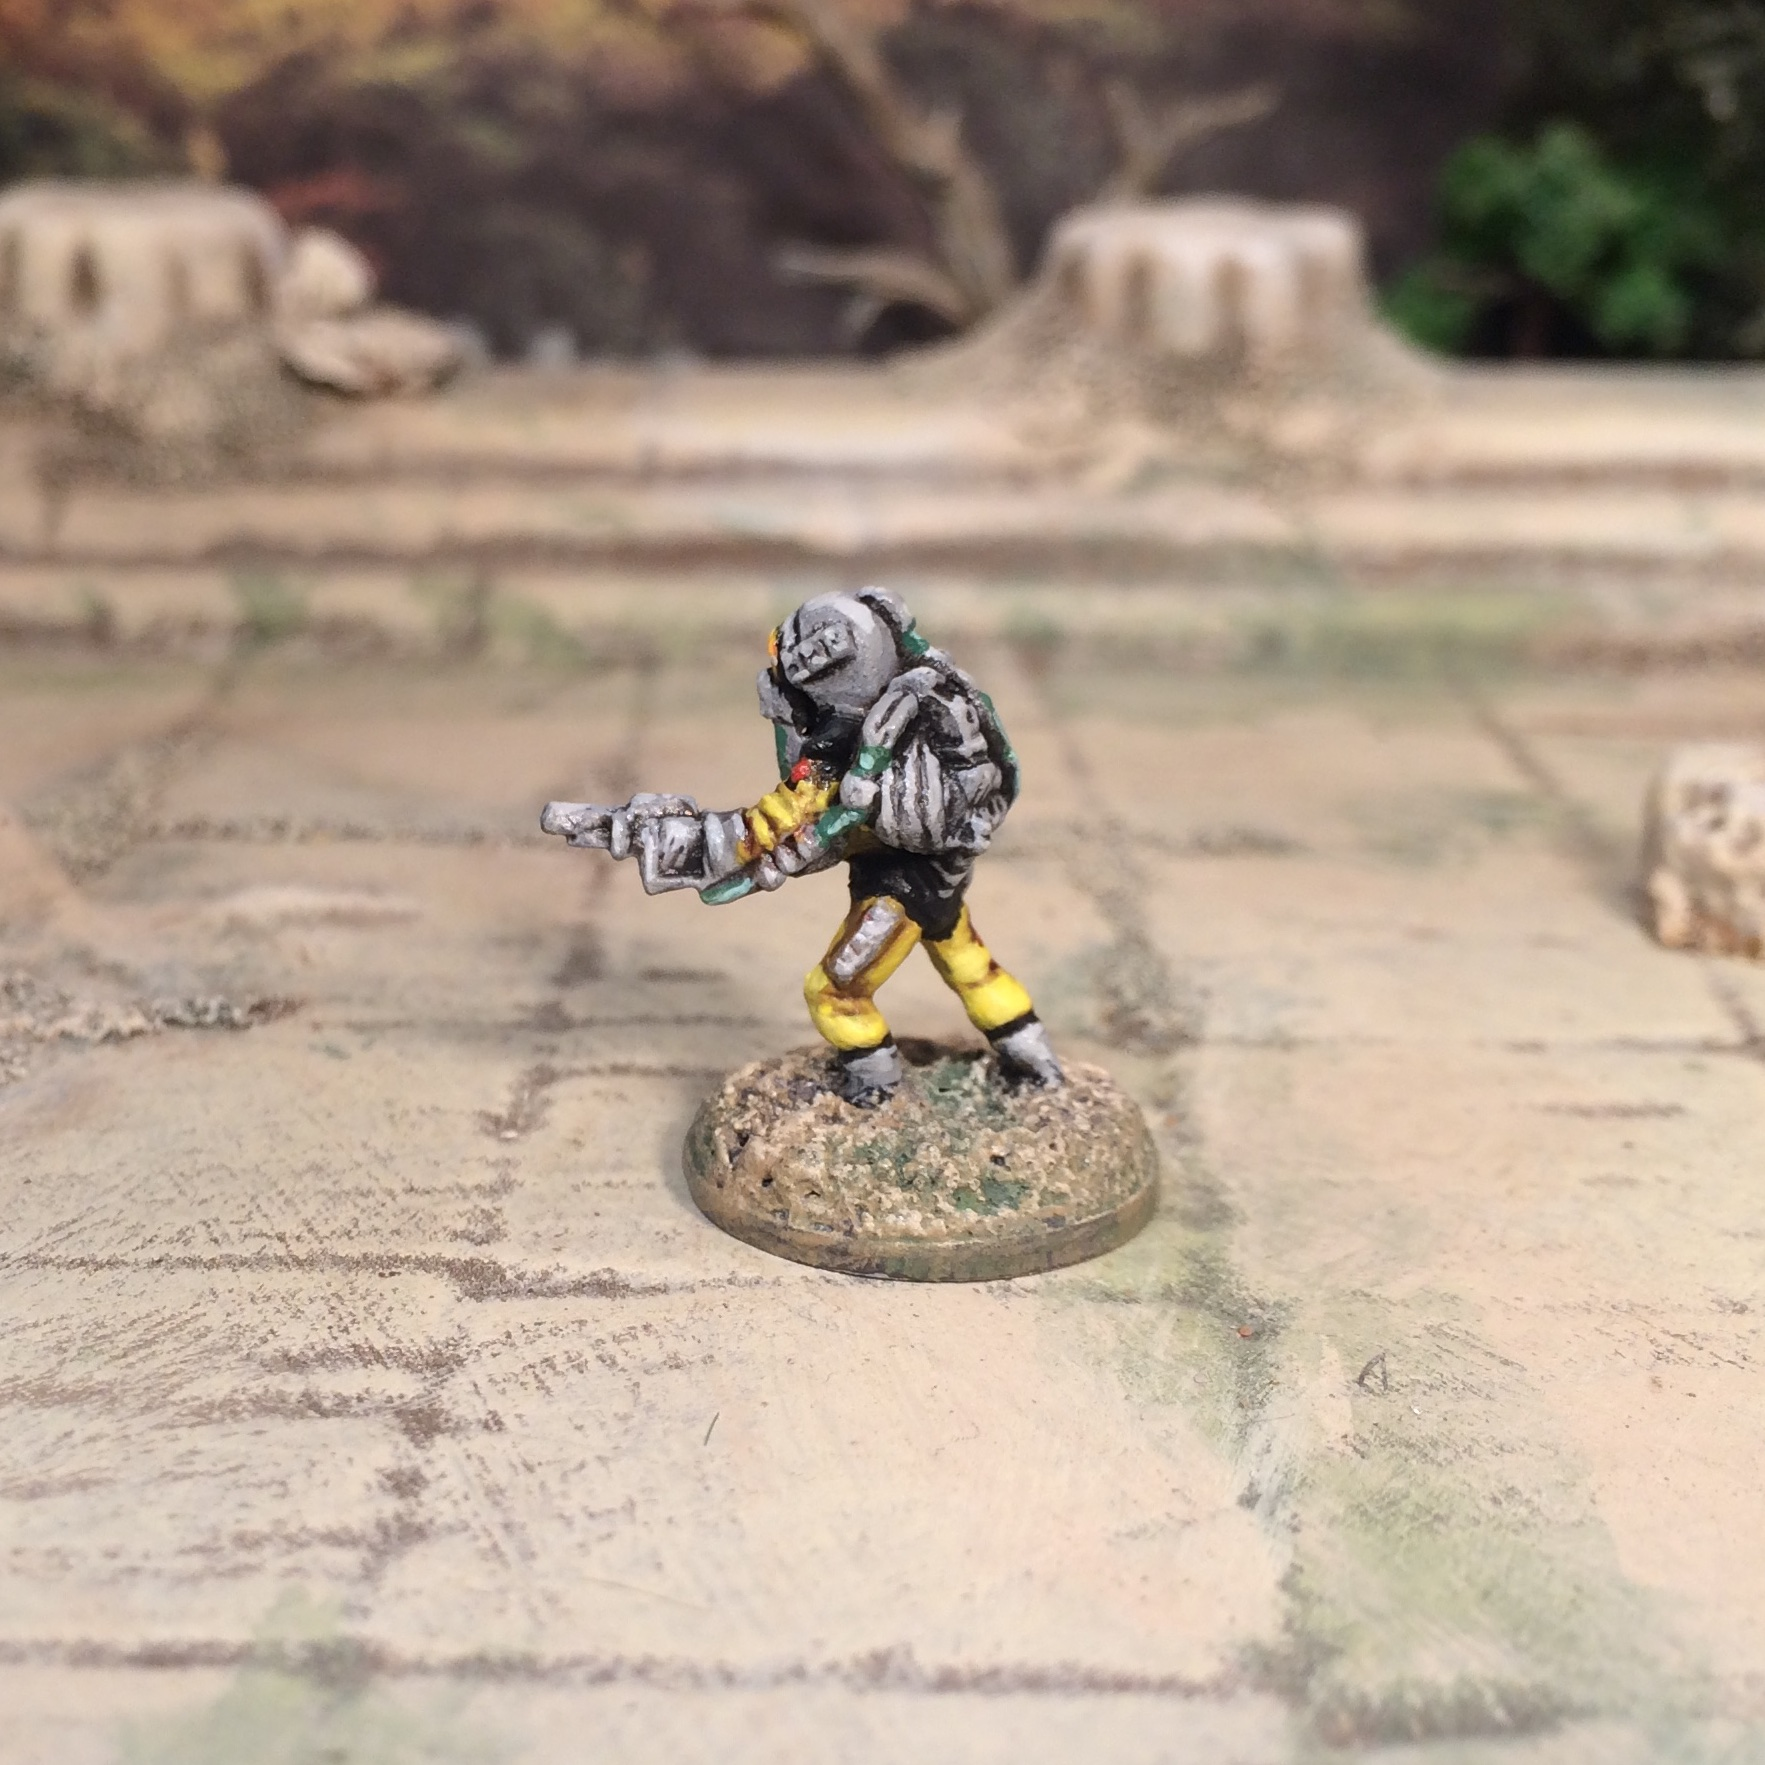 15mm Sci-Fi Traveller Miniature